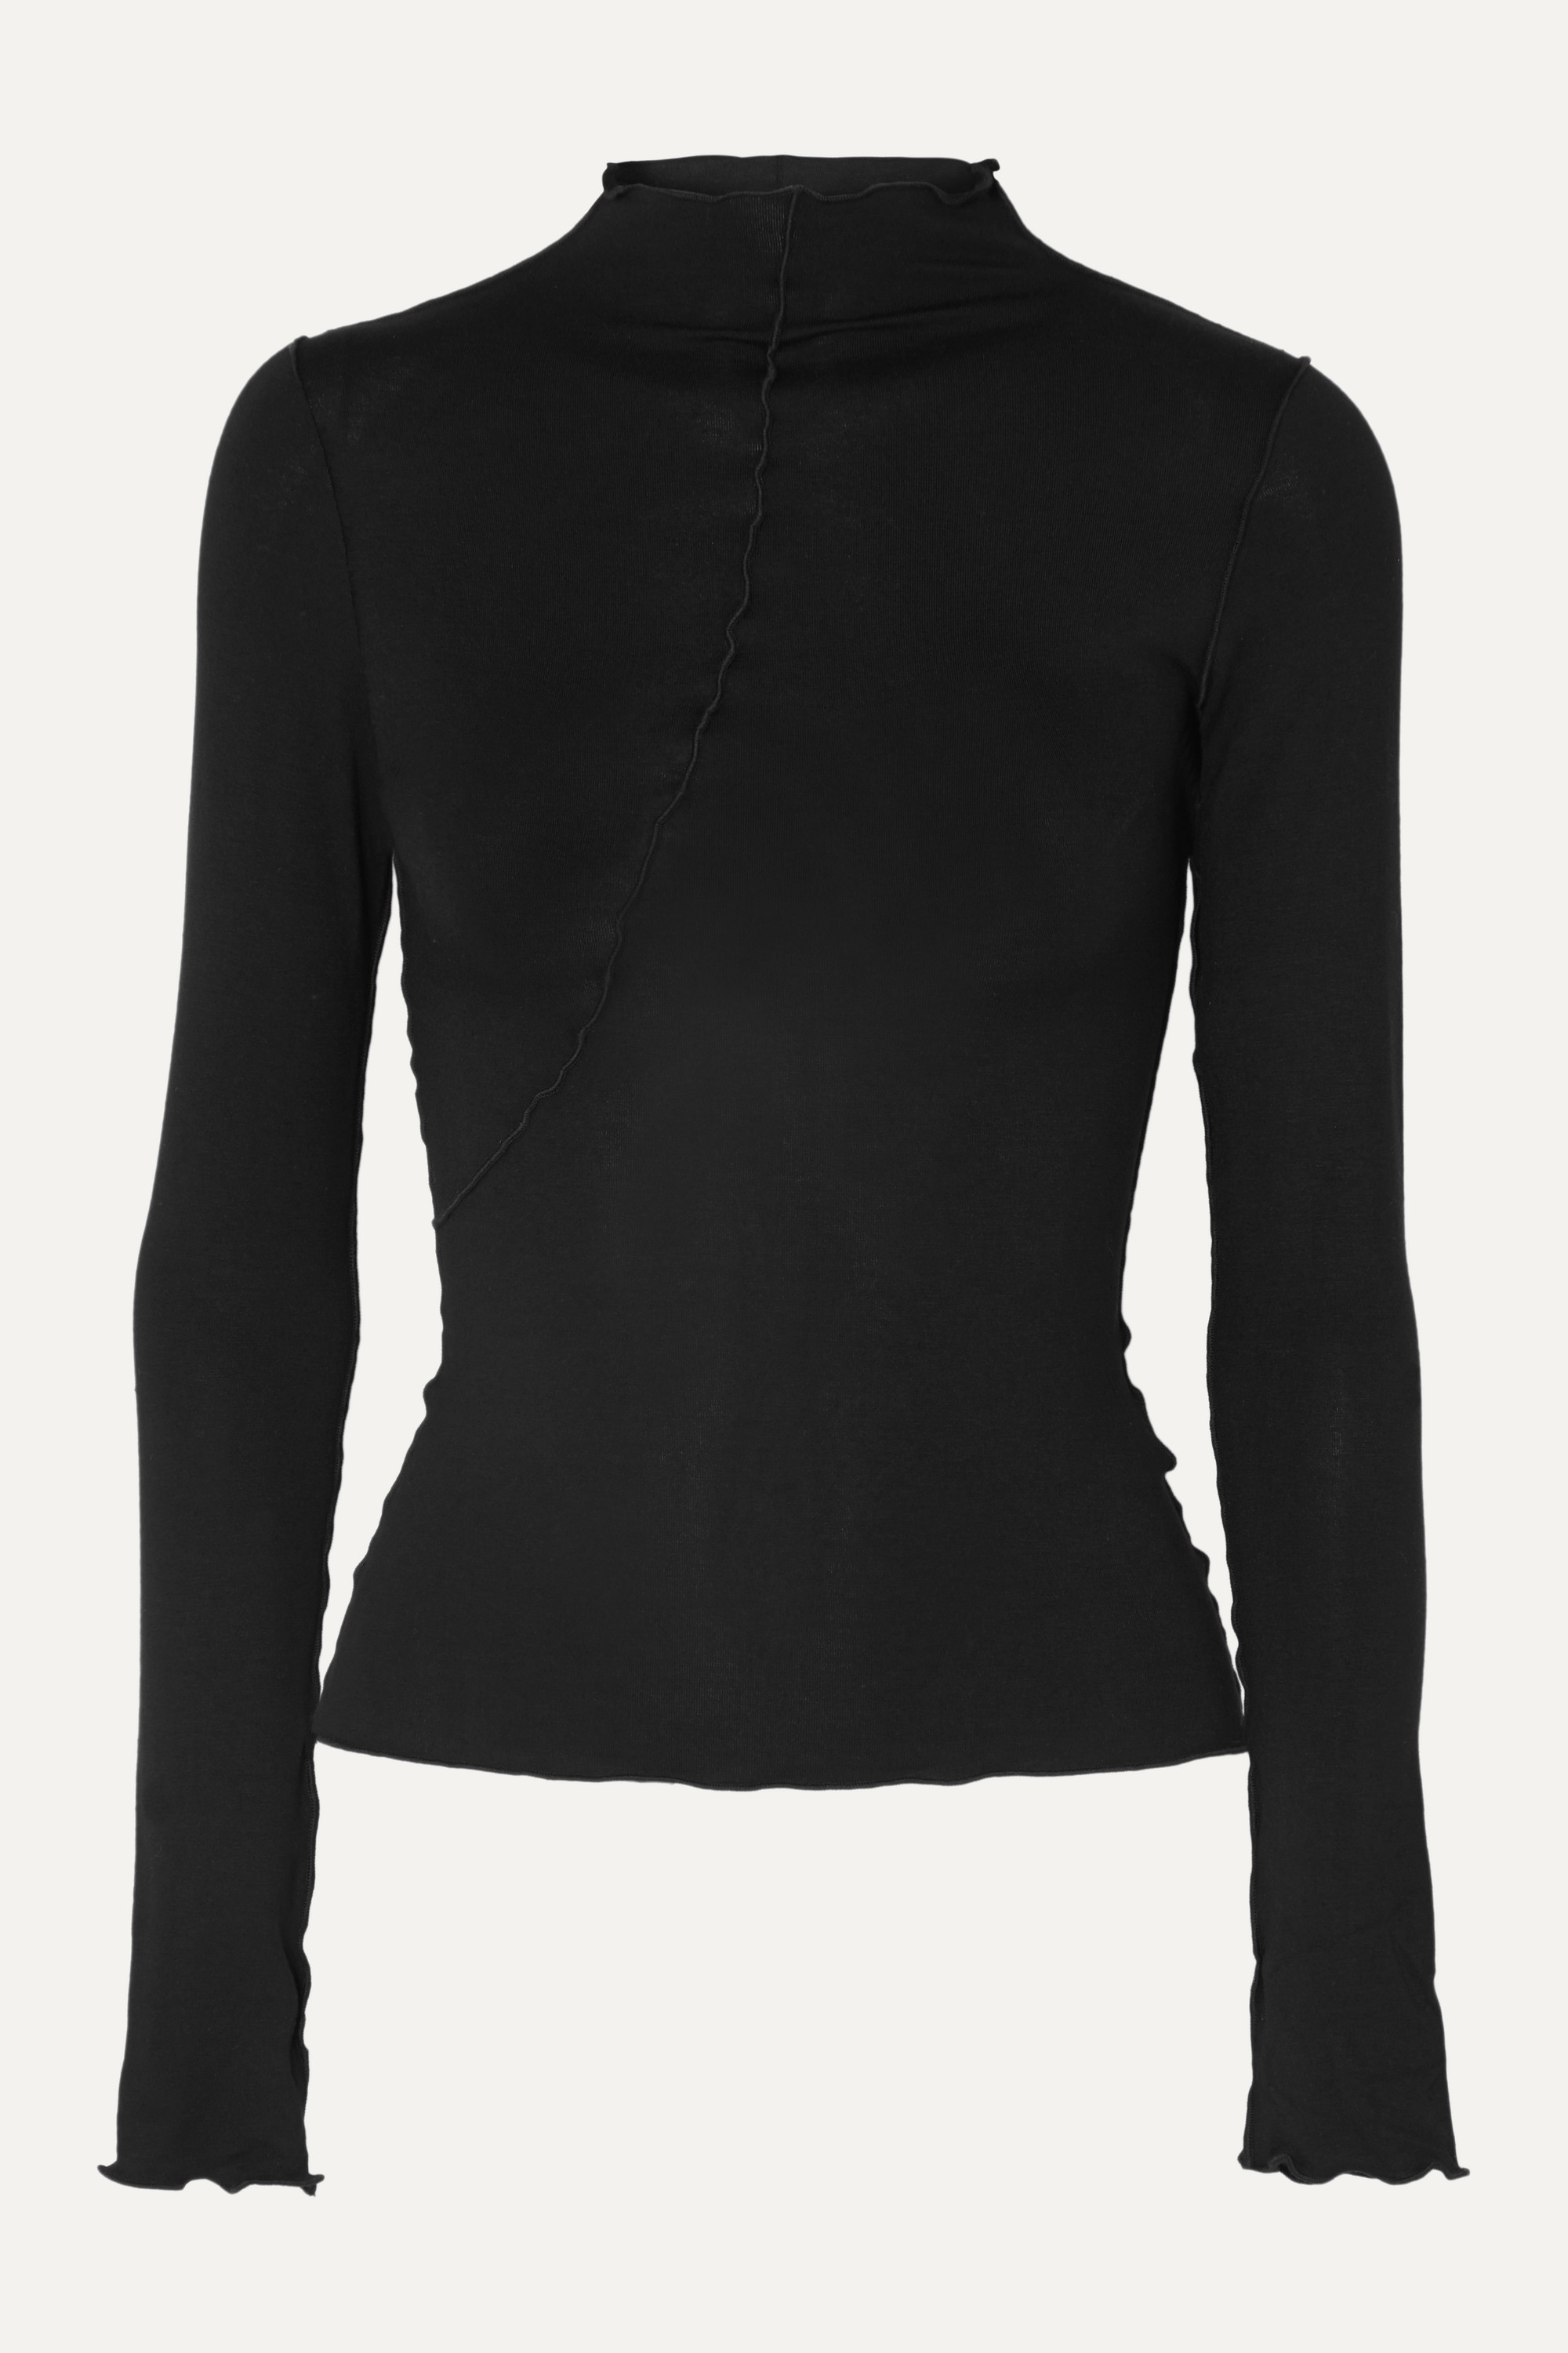 The Line By K Zane stretch-jersey turtleneck top